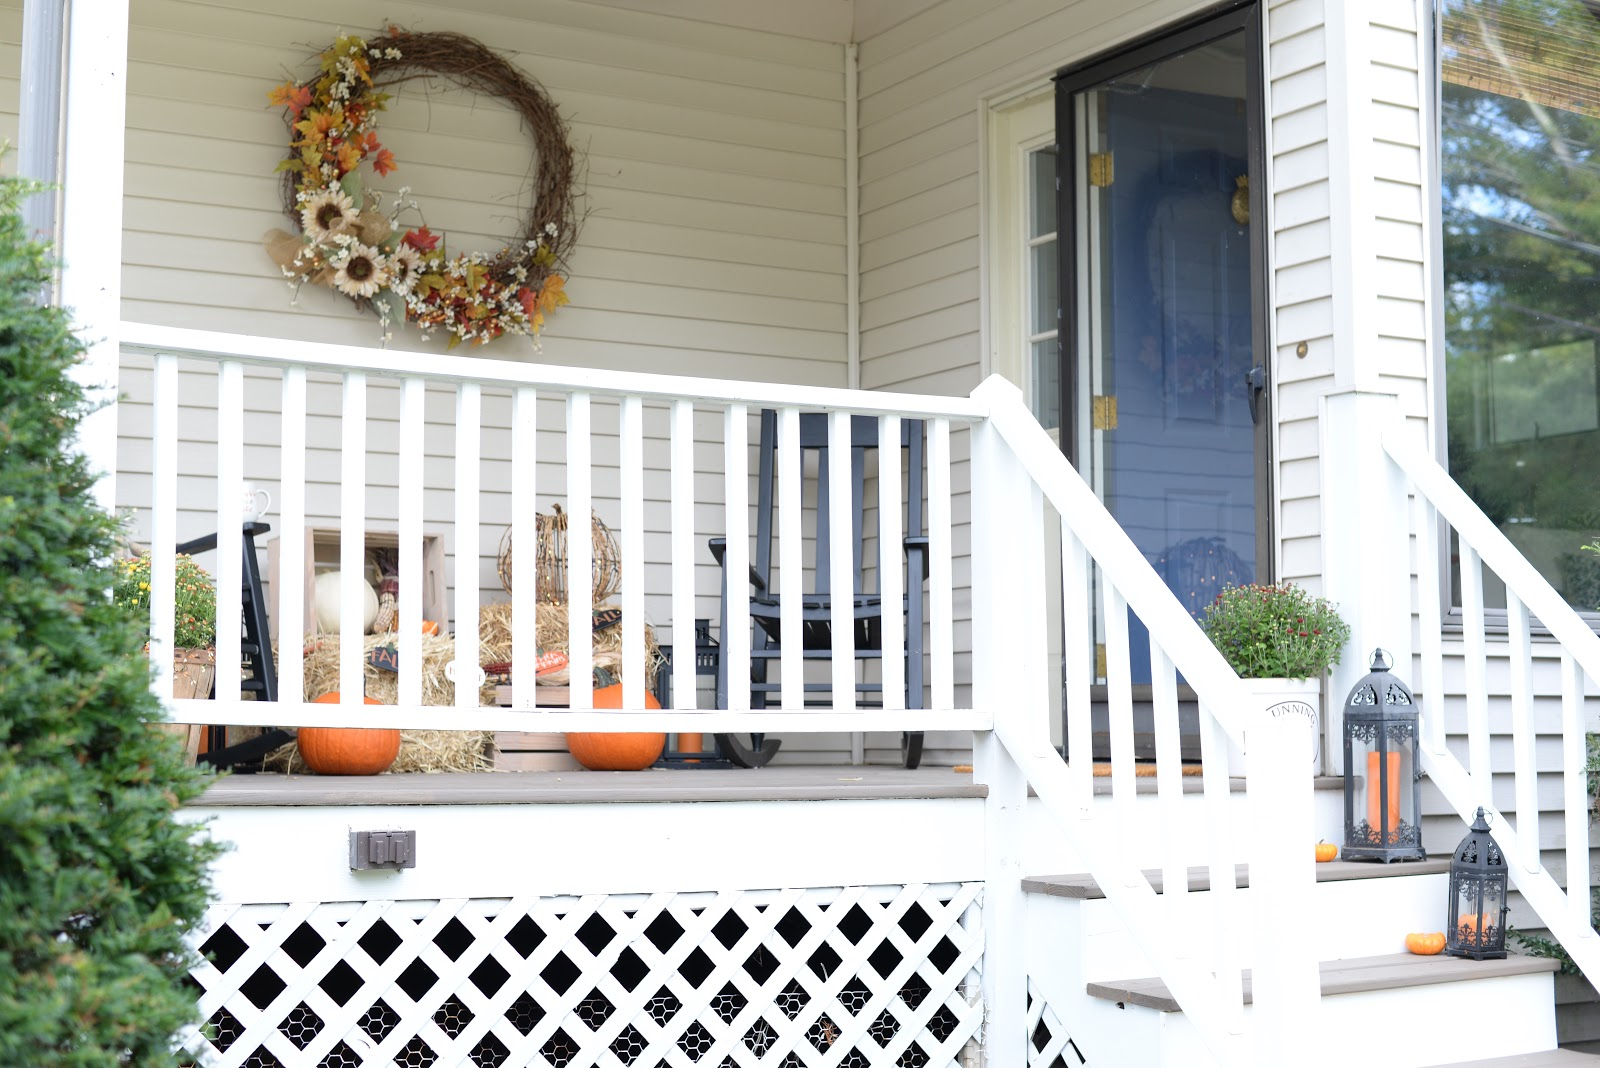 Add curb appeal with Fall decorations